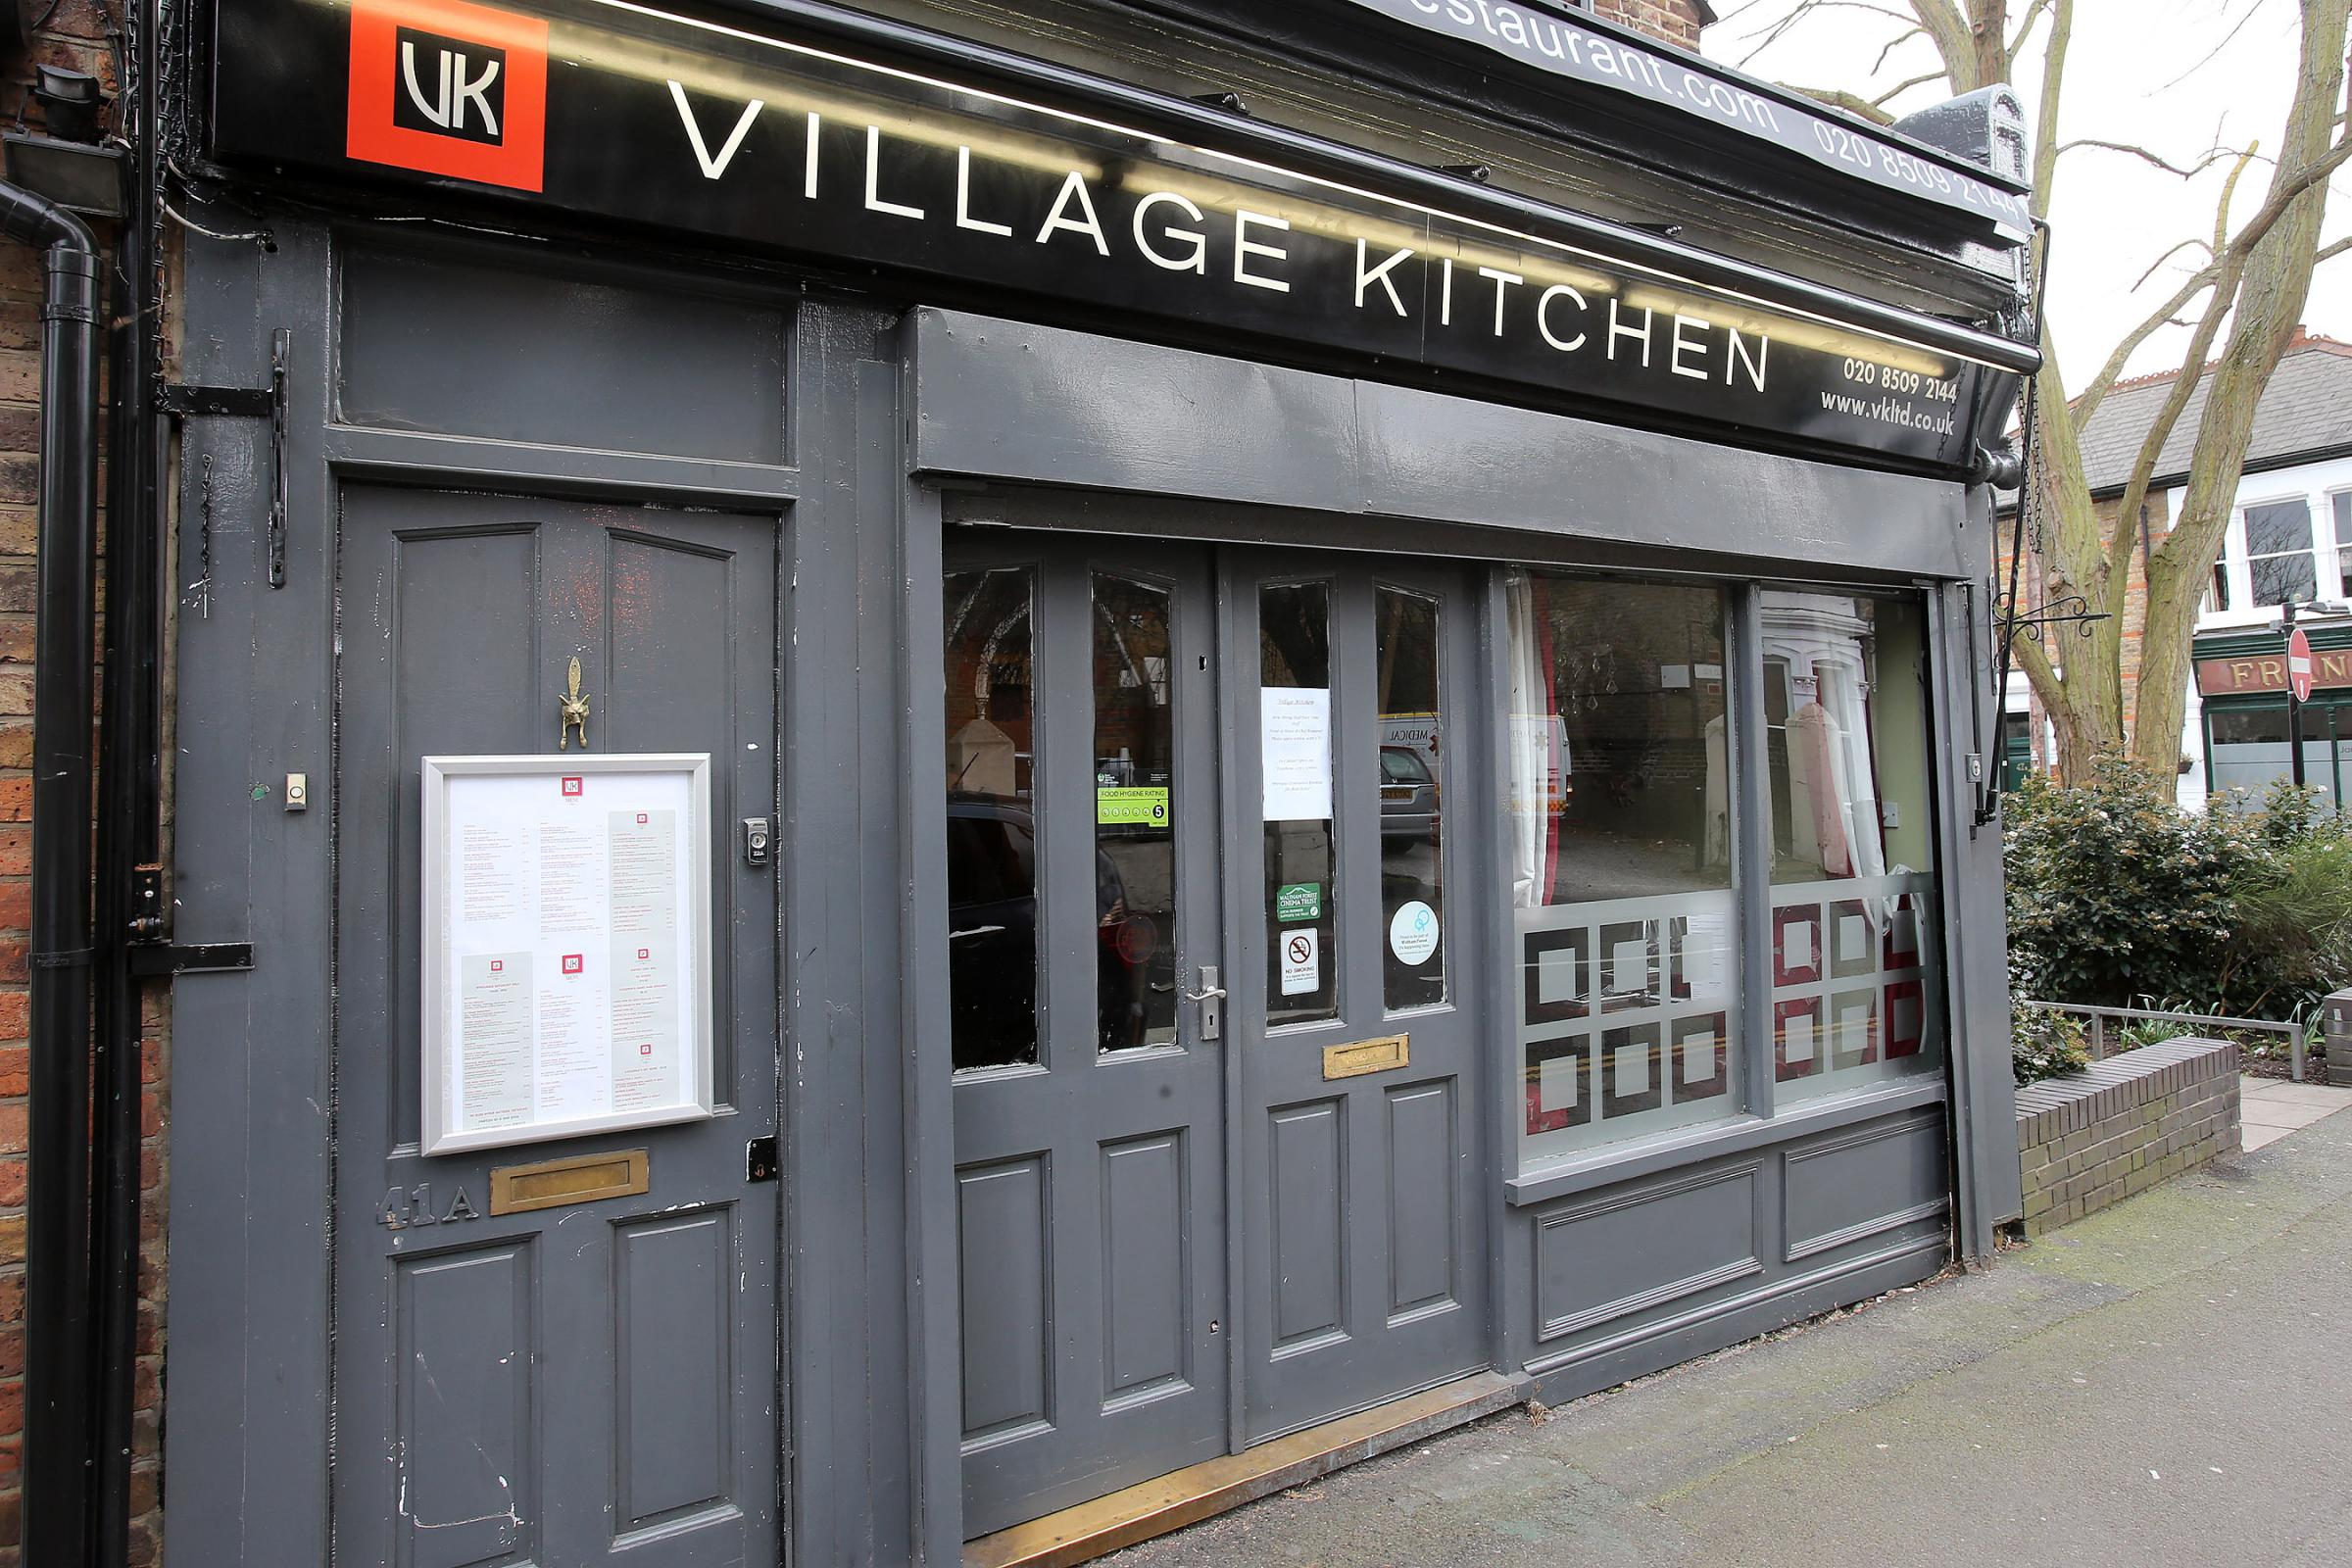 Etonnant The Village Kitchen In Orford Road, Walthamstow, Was Raided By Immigration  Officials On Friday